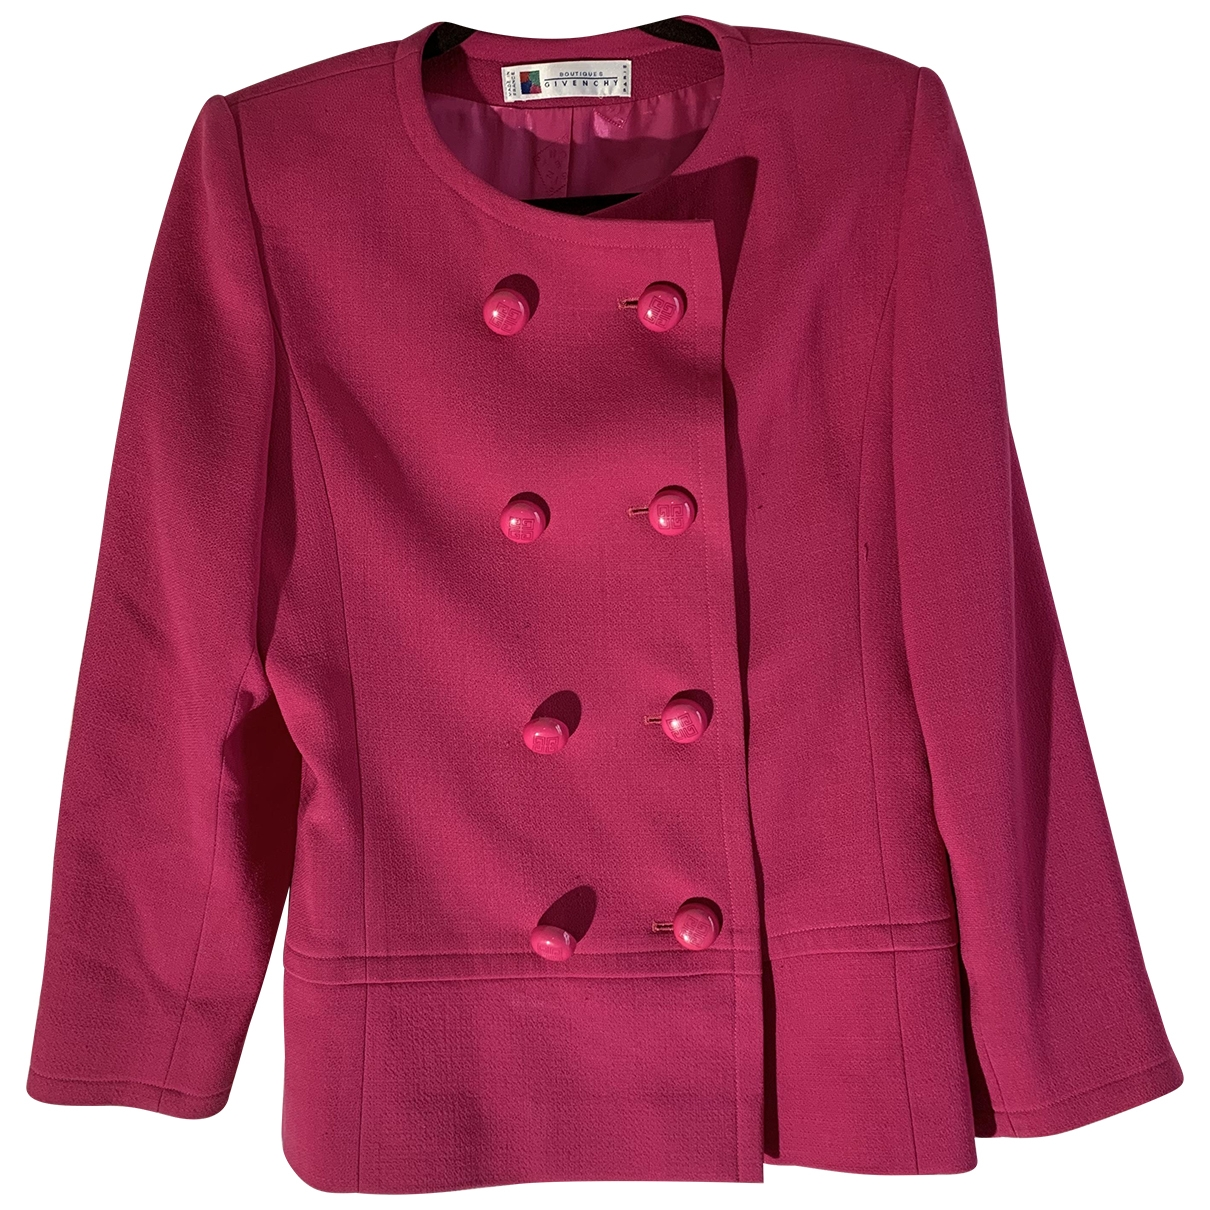 Givenchy \N Purple Wool jacket for Women 38 FR